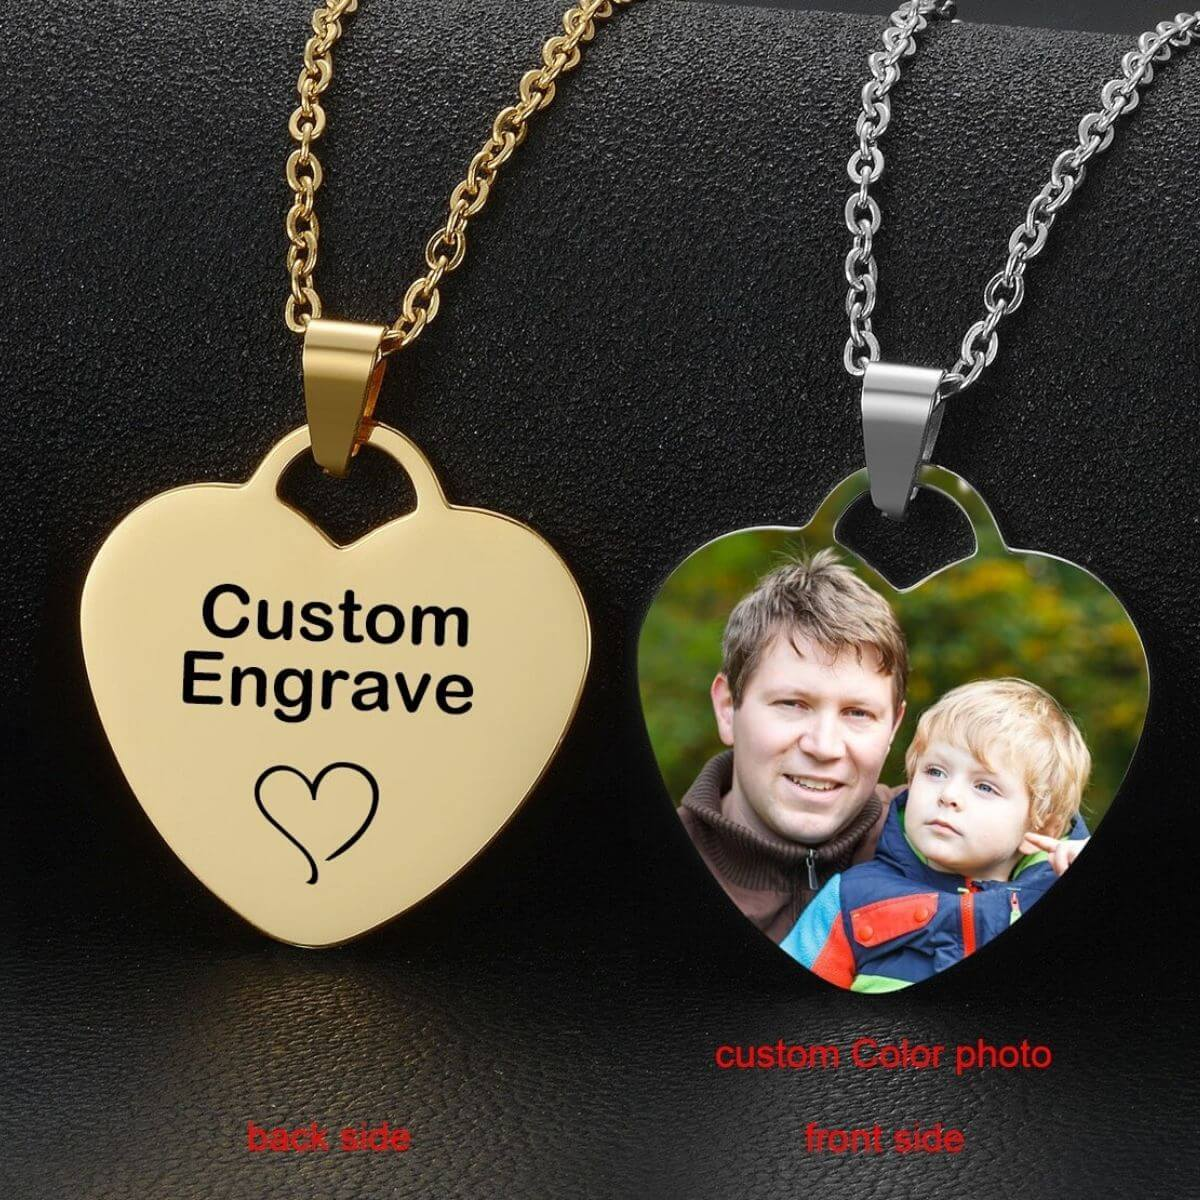 Customized Stainless Steel Heart Pendant Necklaces